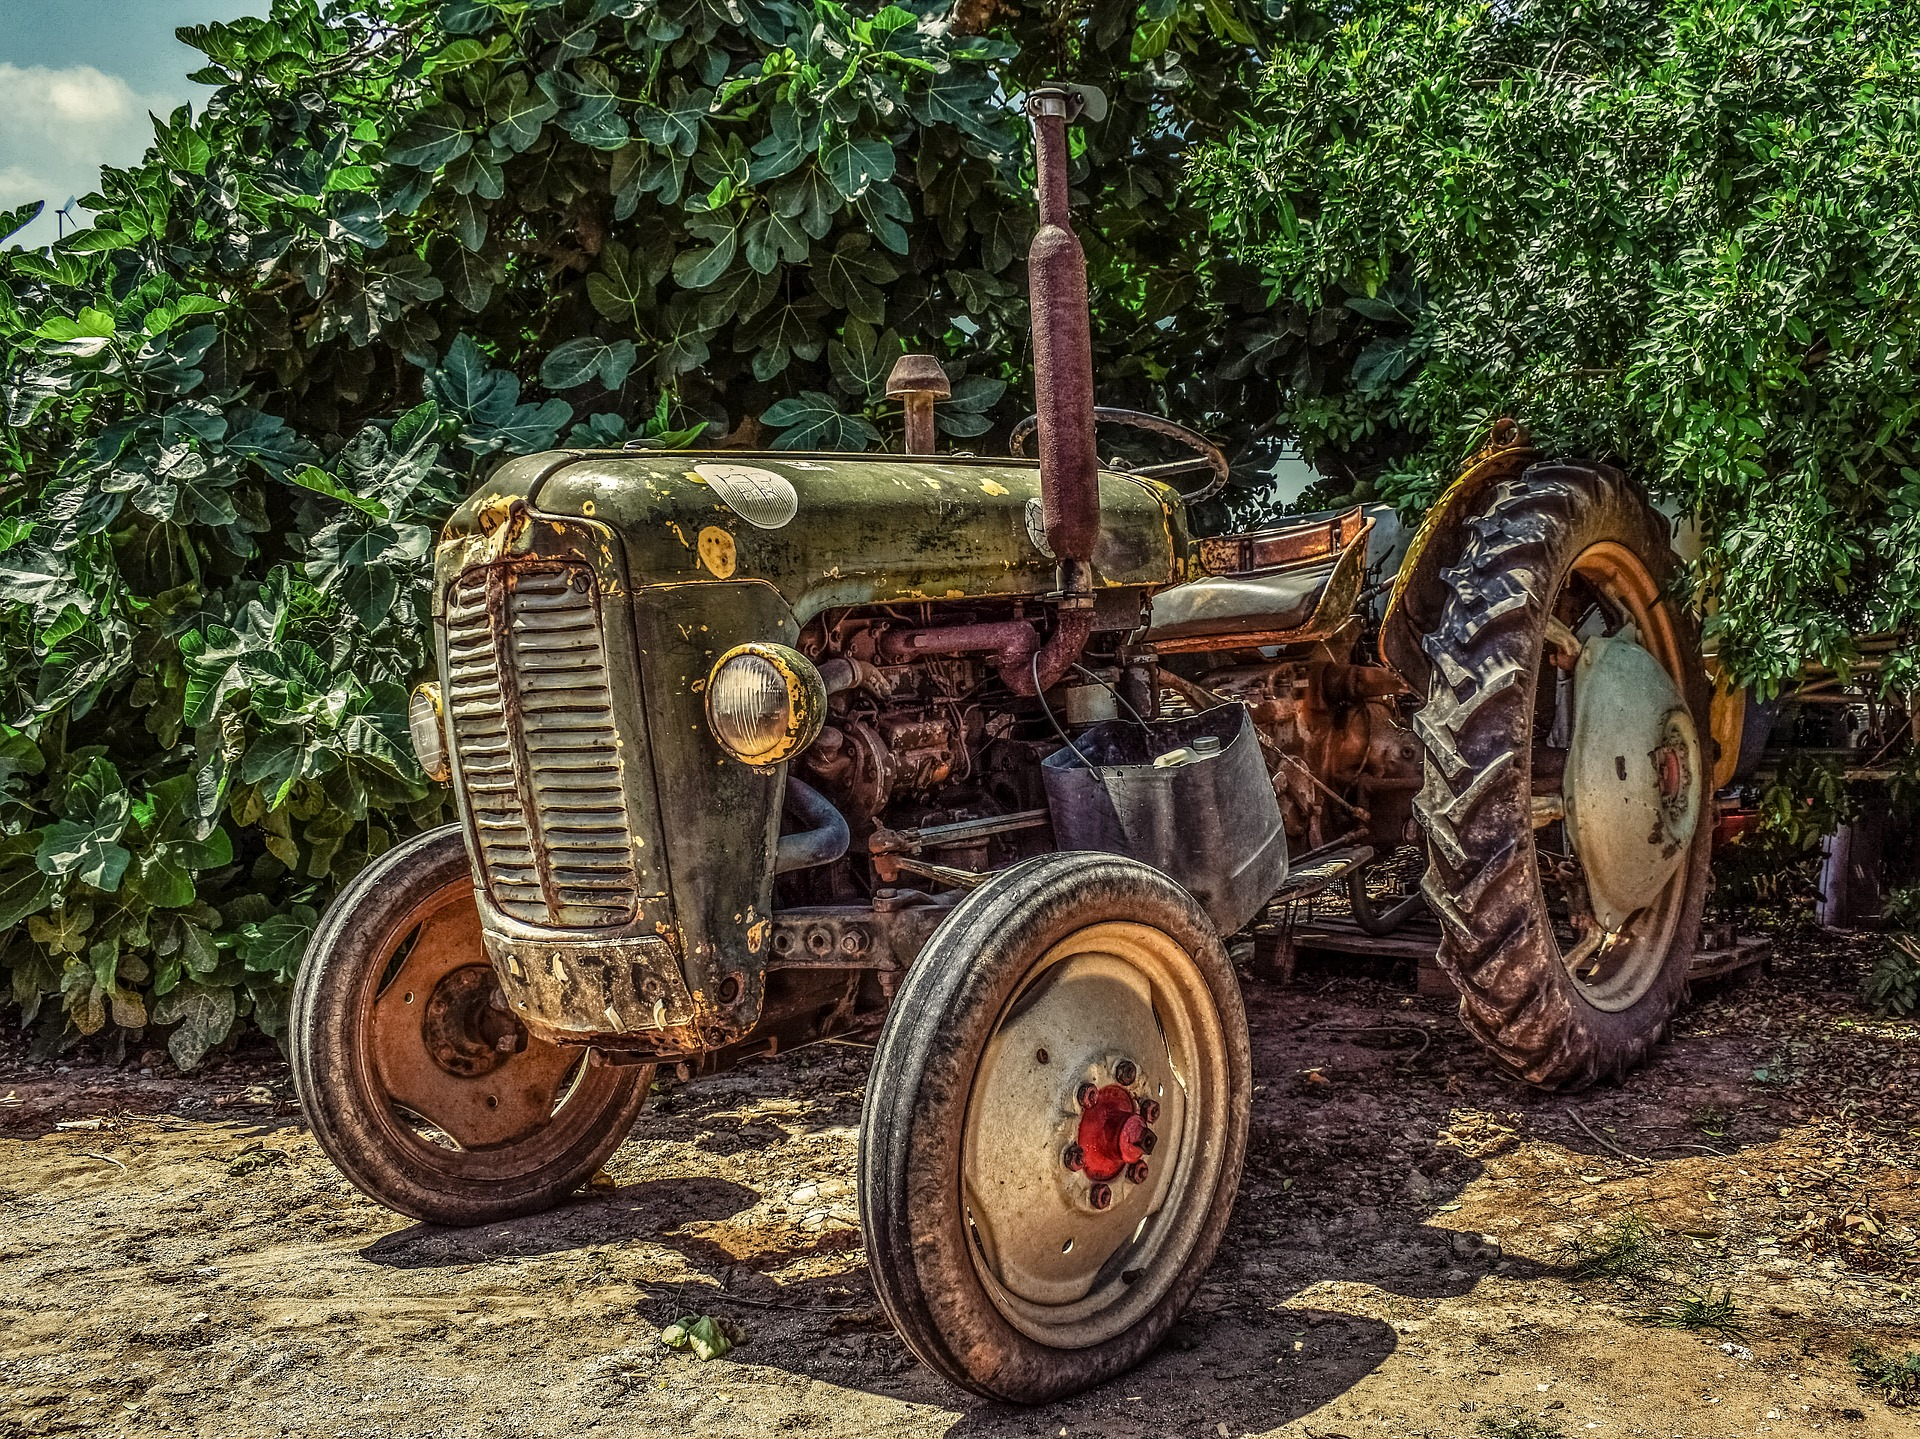 tractor-2390842_1920